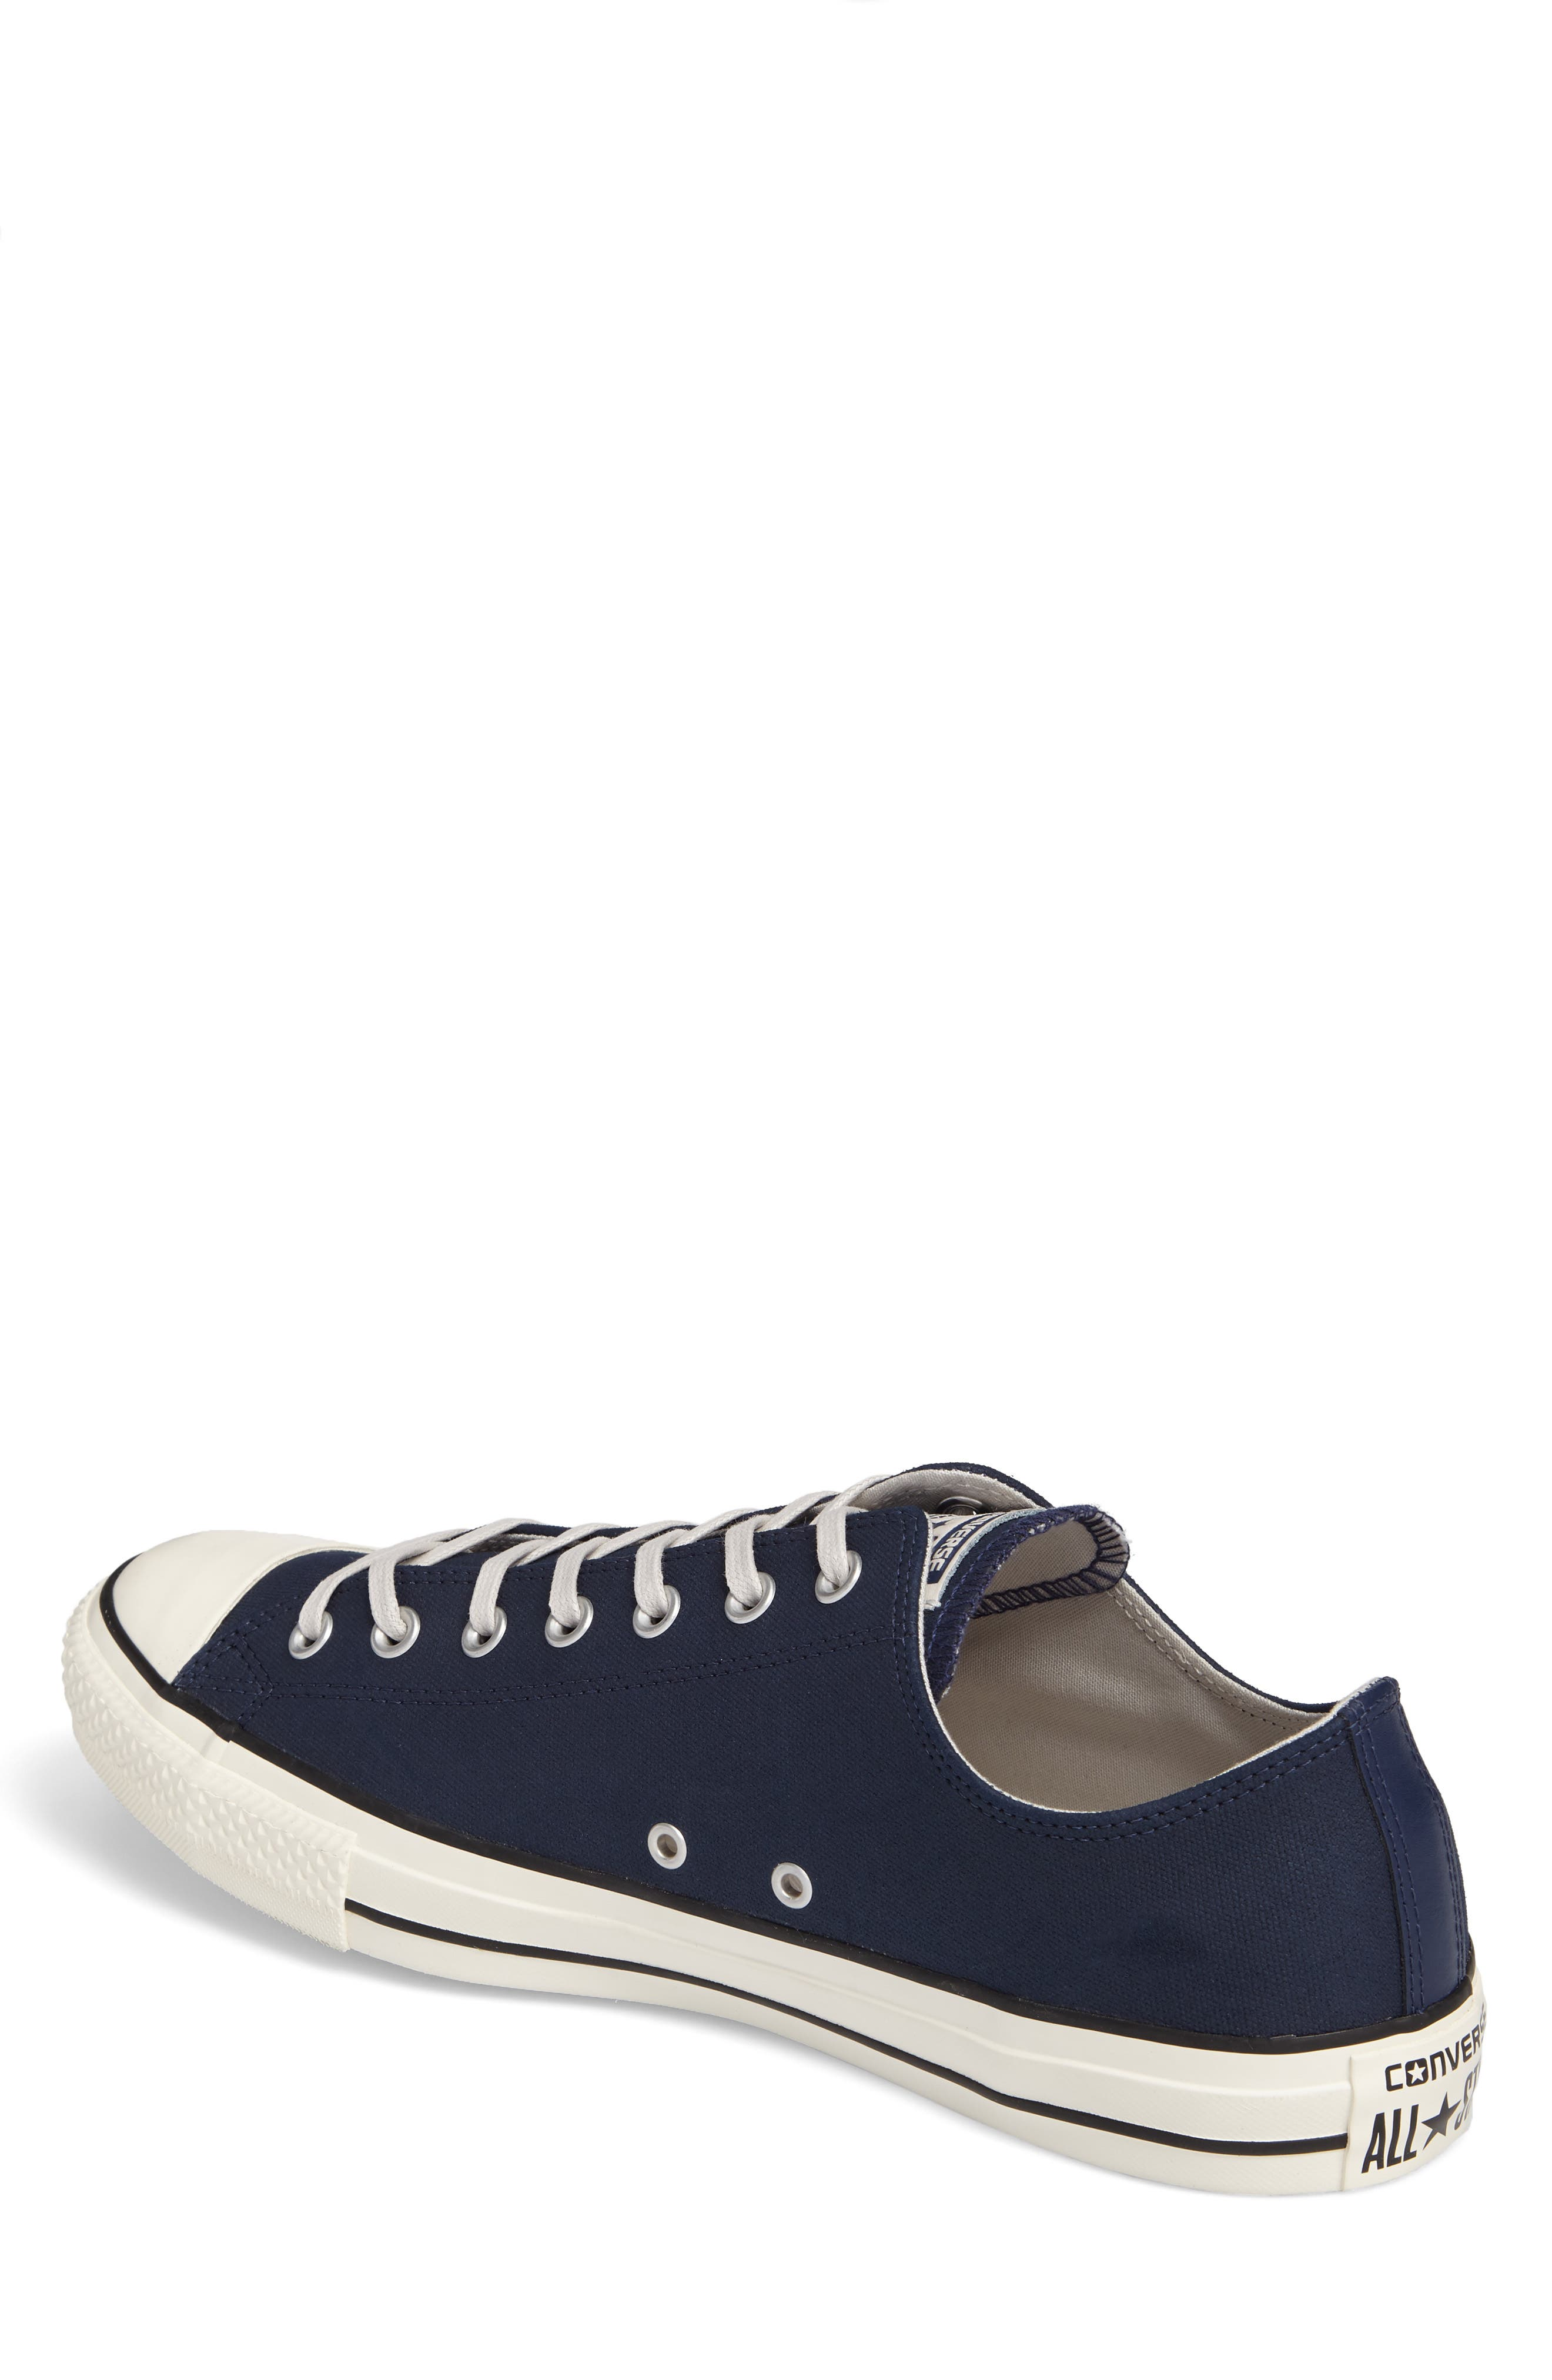 Chuck Taylor<sup>®</sup> All Star<sup>®</sup> Low Top Sneaker,                             Alternate thumbnail 2, color,                             471